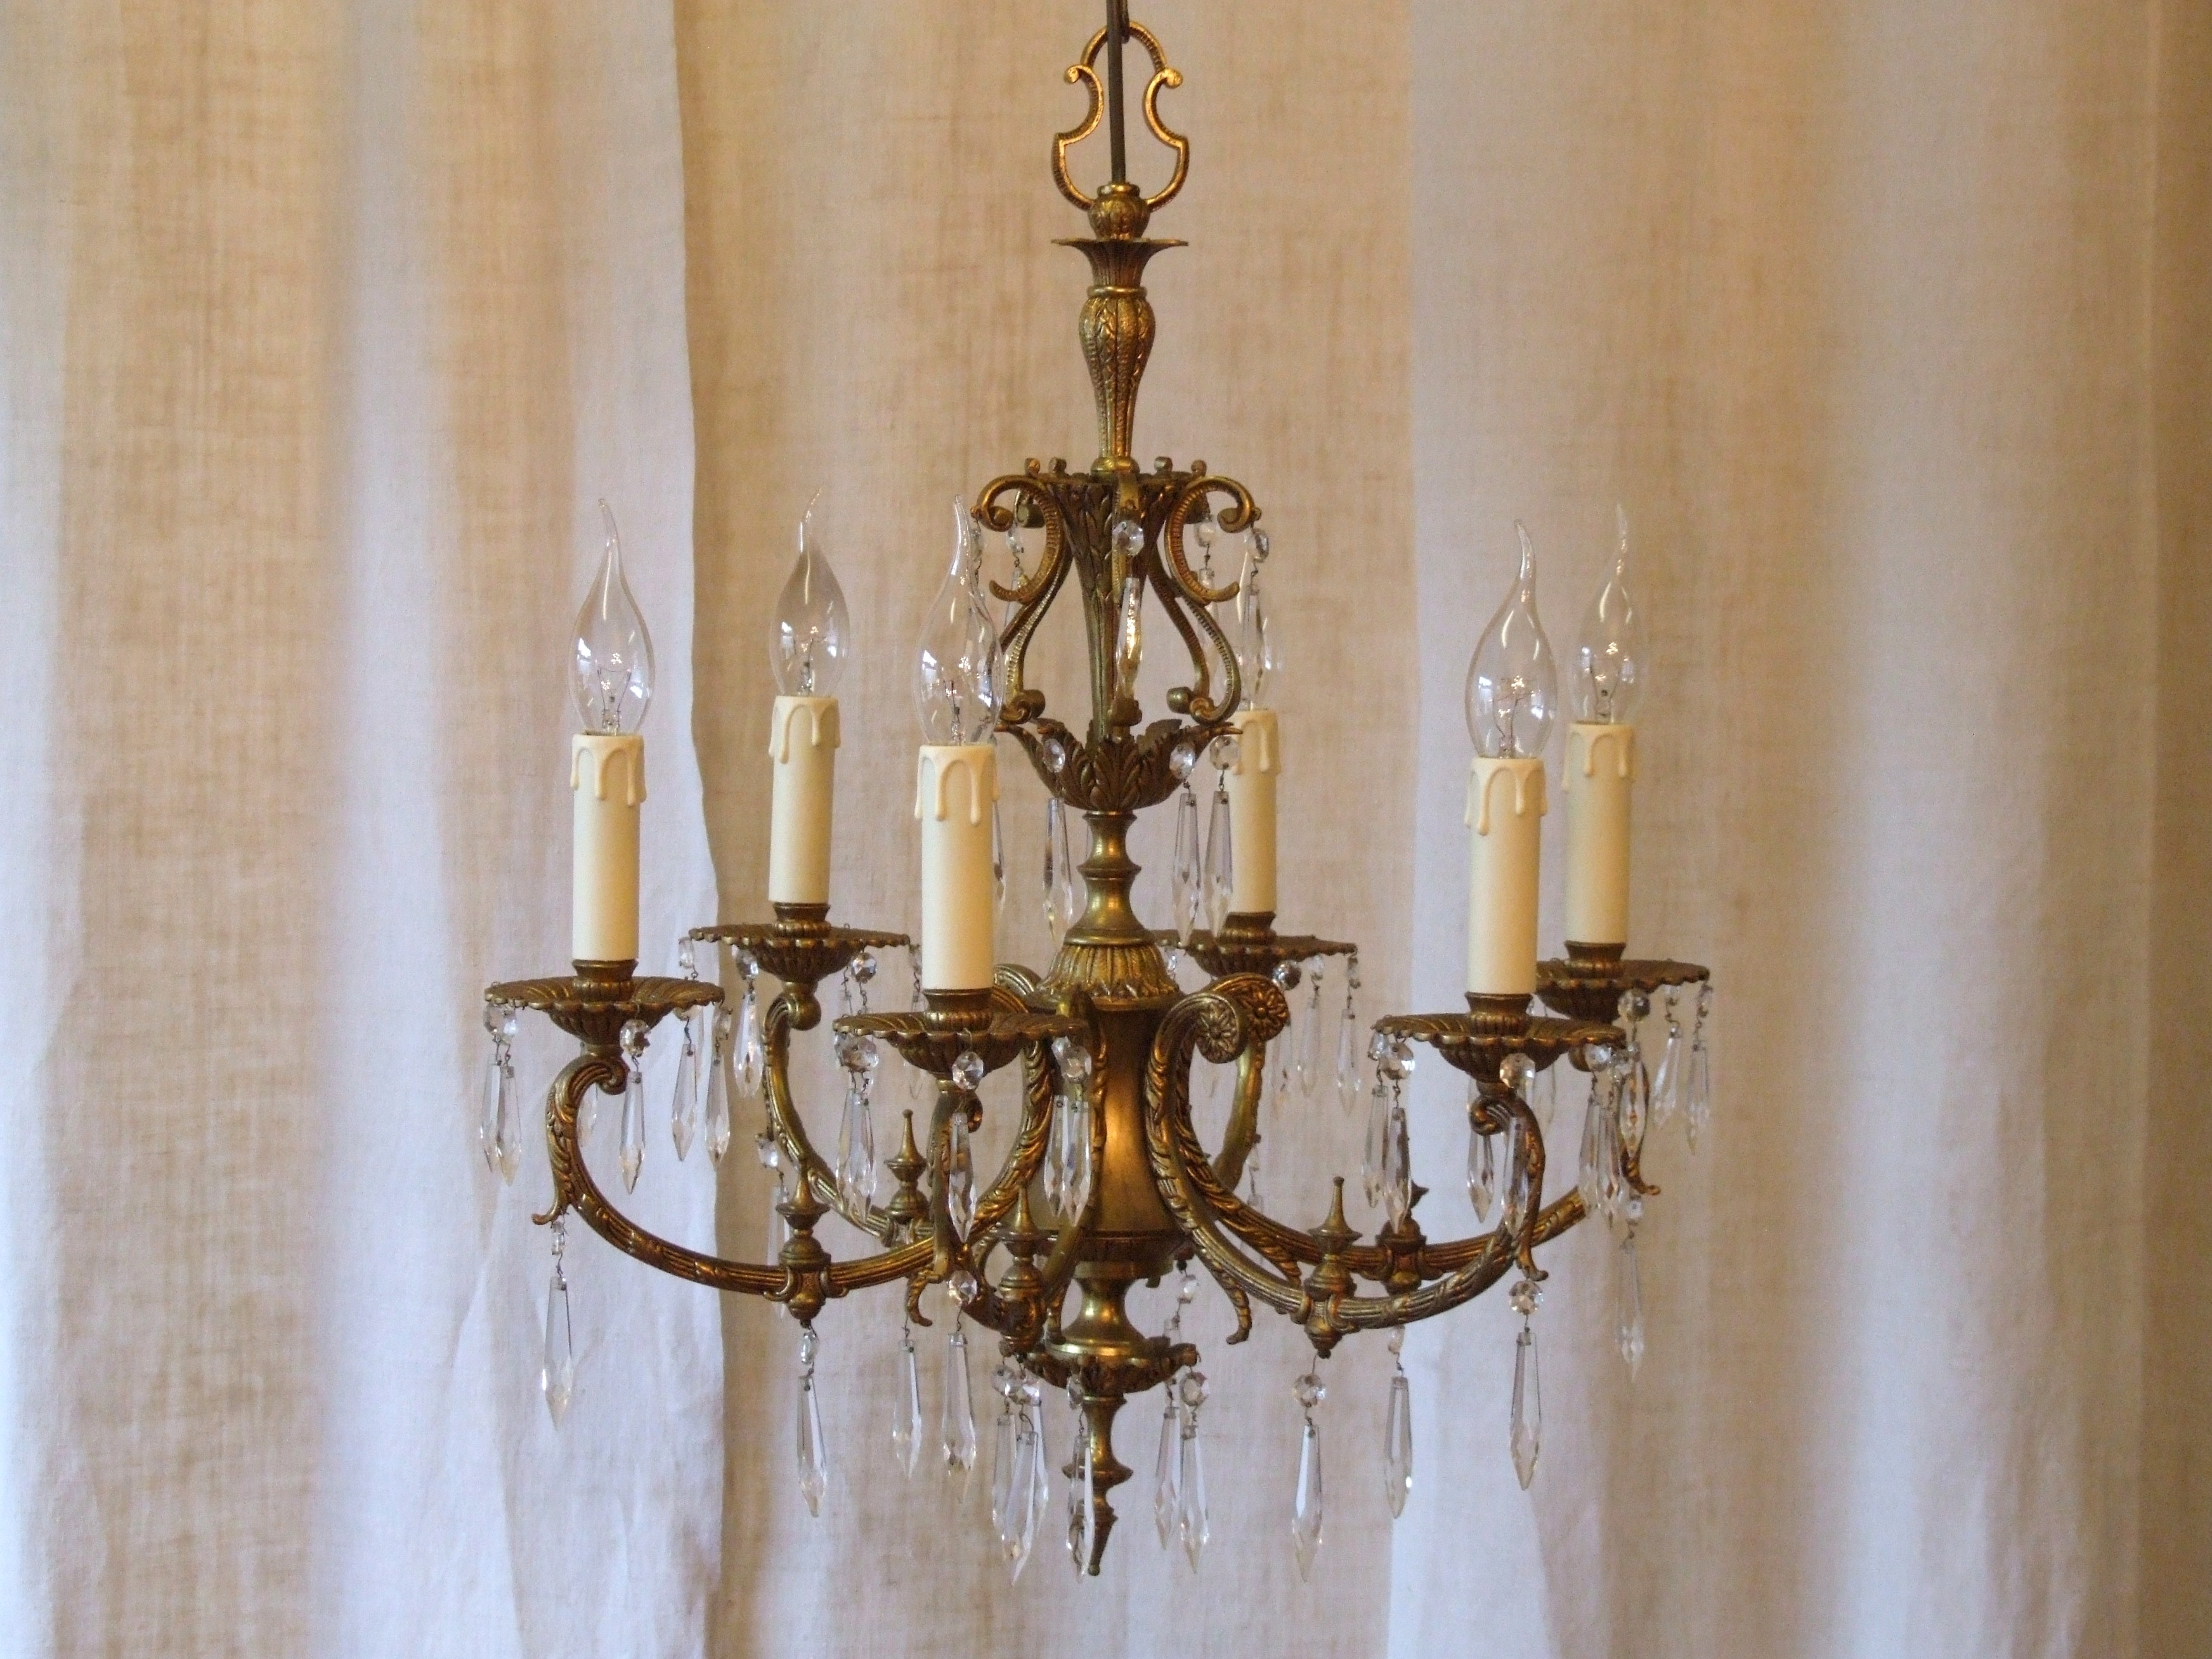 L158s Exquisite Vintage Italian 6 Arm Gilded Brass And Crystal Regarding Vintage Italian Chandeliers (Image 10 of 15)